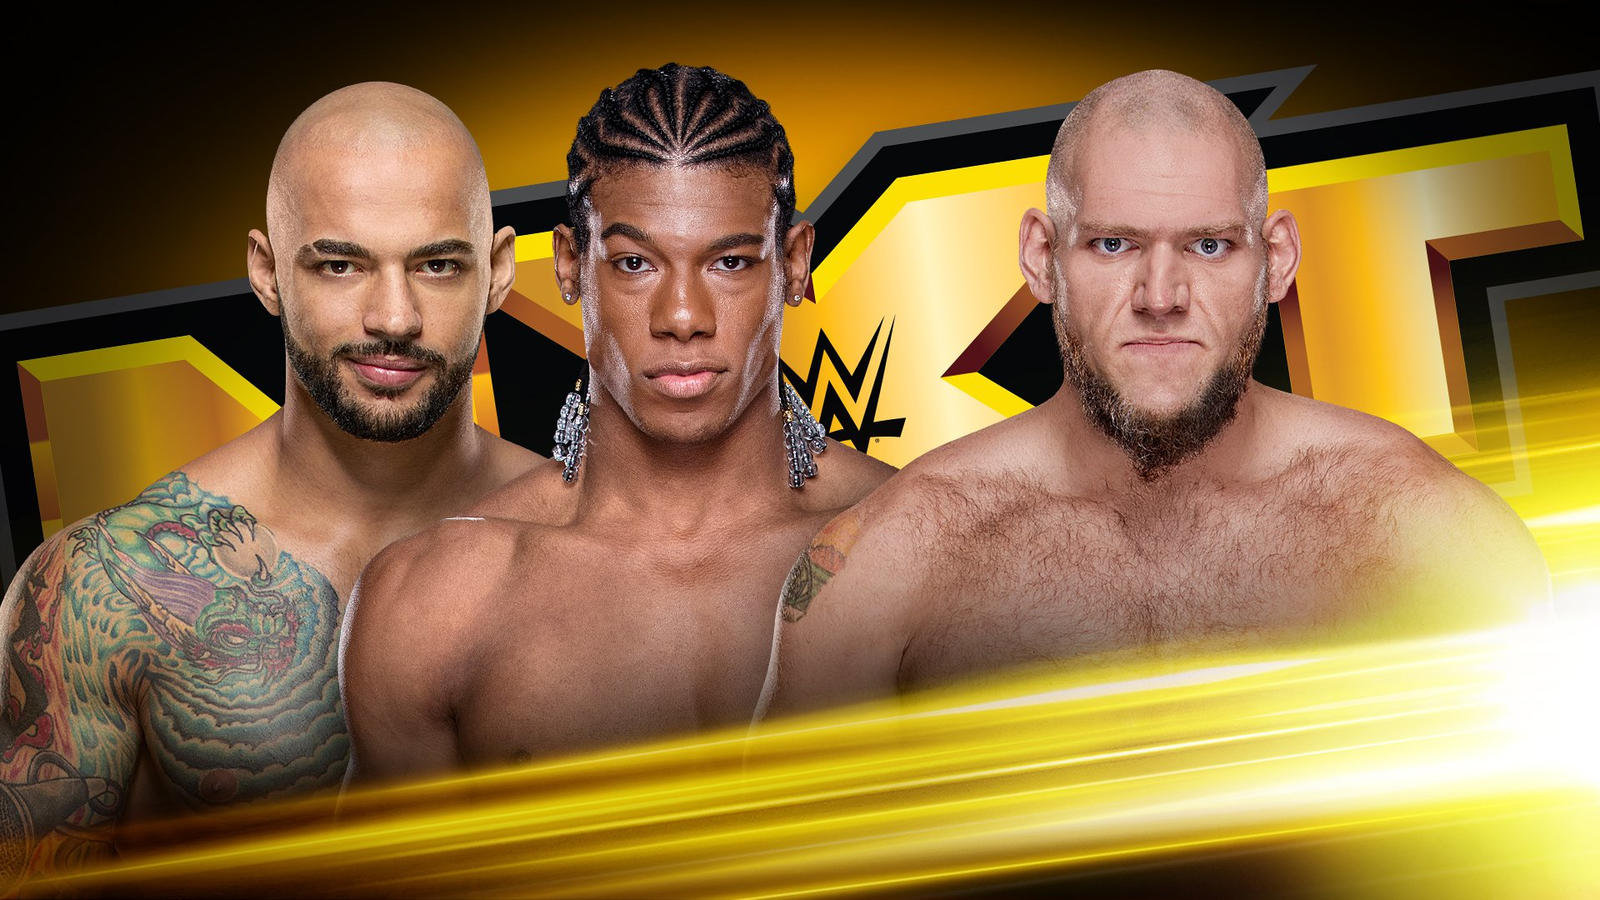 Three of NXT's biggest starts face off in a 2v1 Handicap!